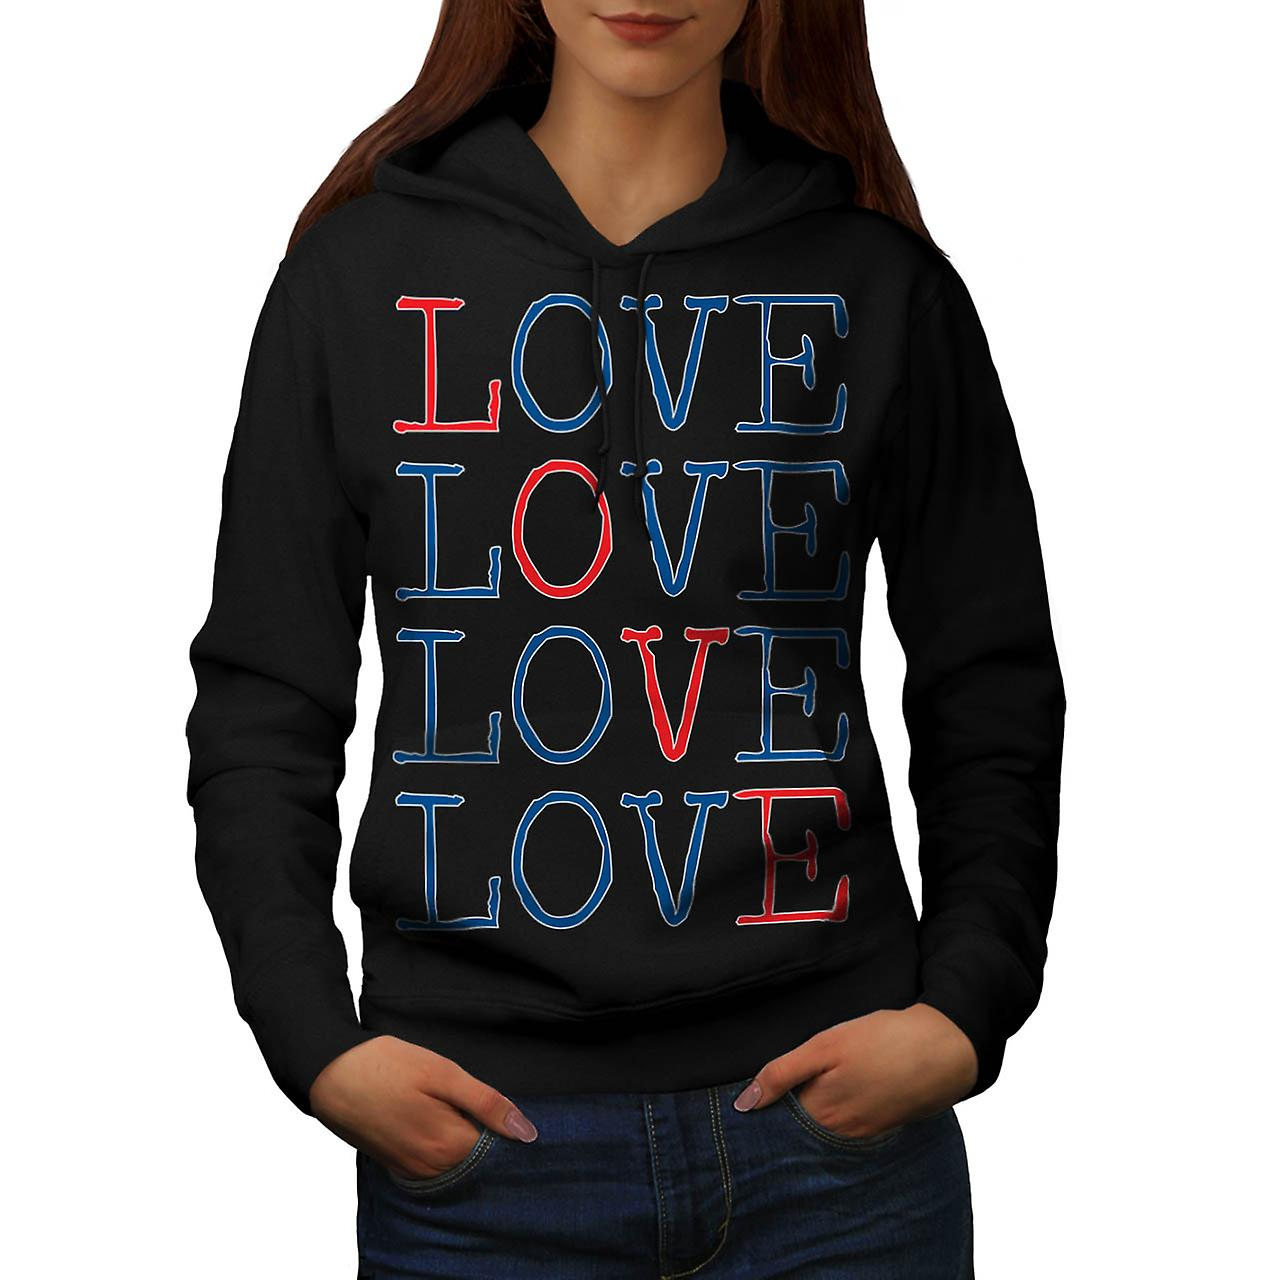 All You Need Is Love Romantic Fun Women Black Hoodie | Wellcoda